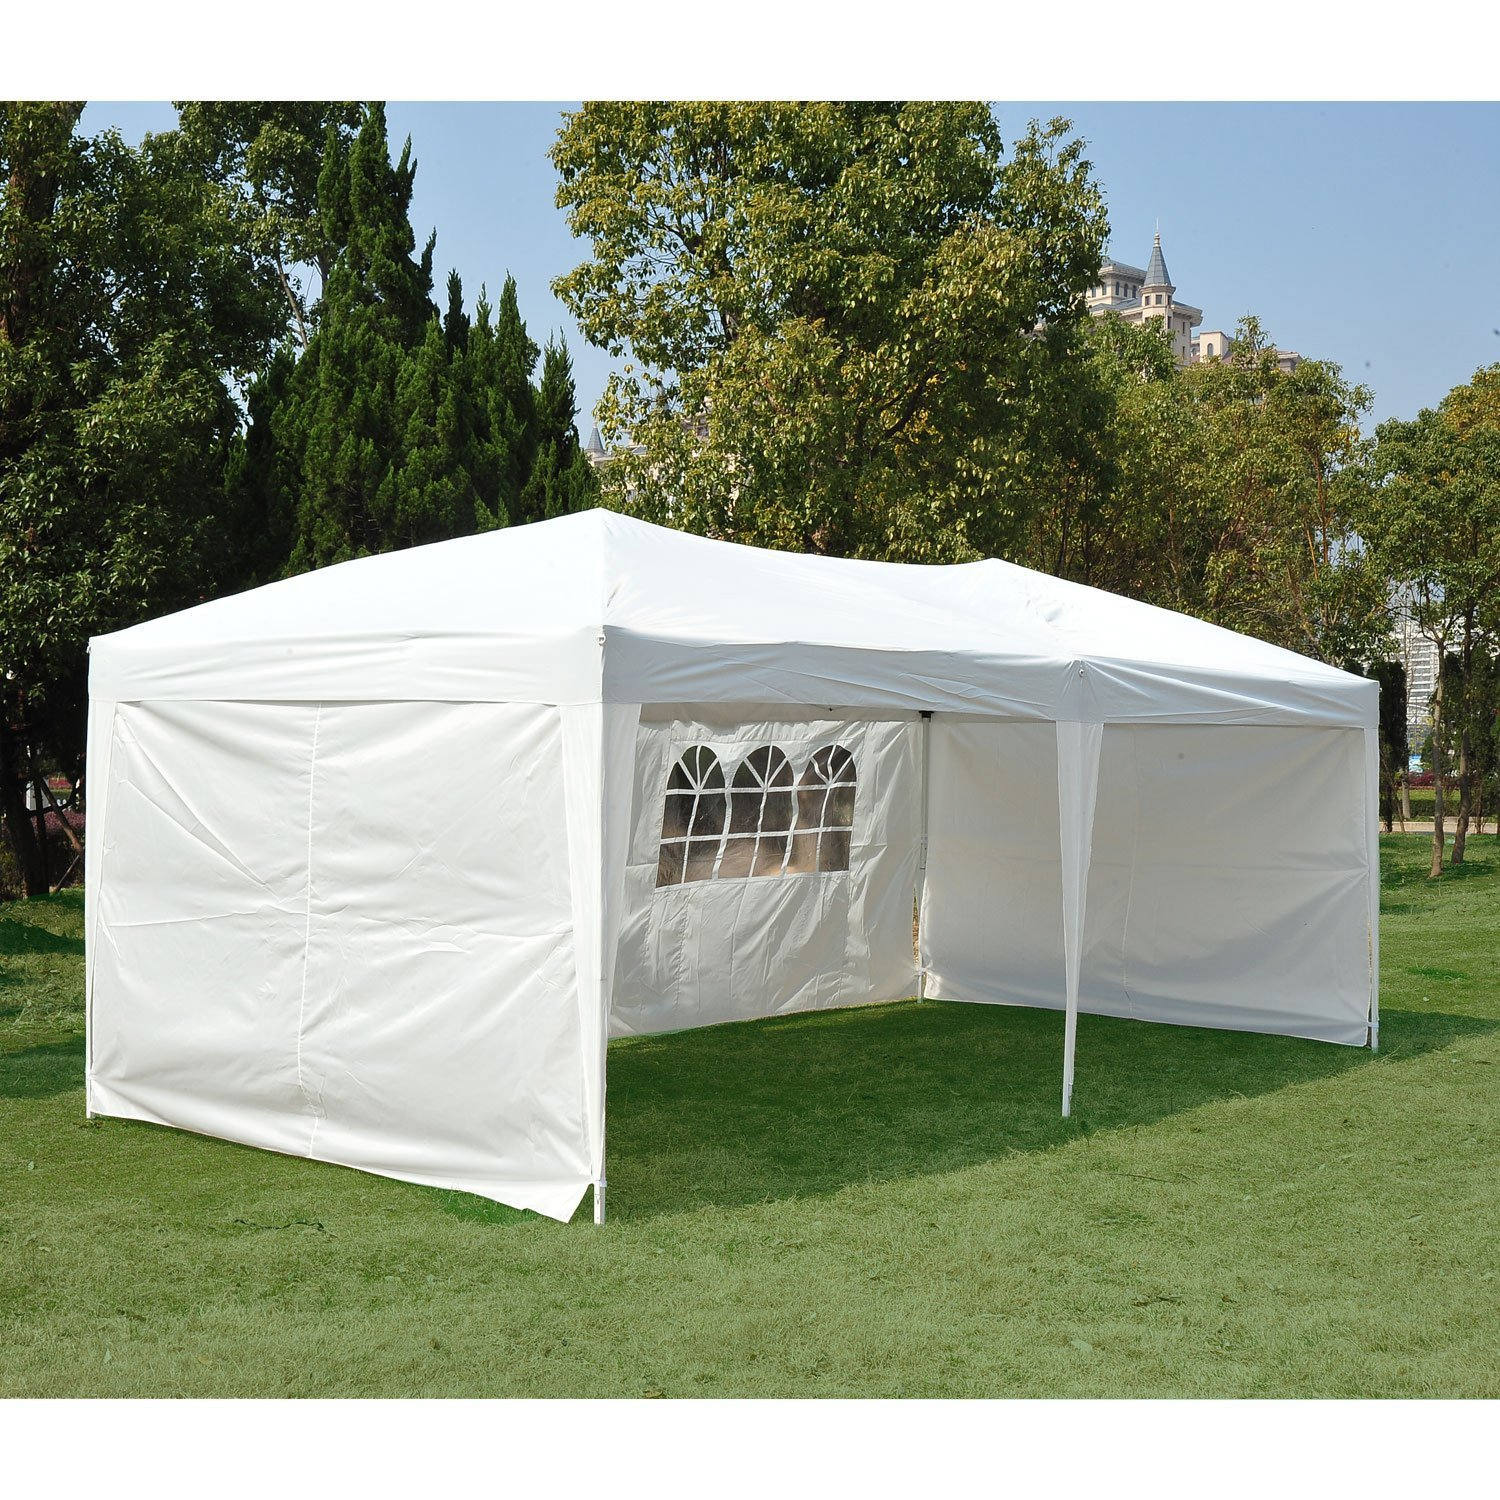 Clevr 10'x20' Wedding Party Canopy Tent, Outdoors Events Gazebo, with Removable Sidewalls with Windows, Fits 30 People, Great for Event and Party Pavilion Cater by Clevr